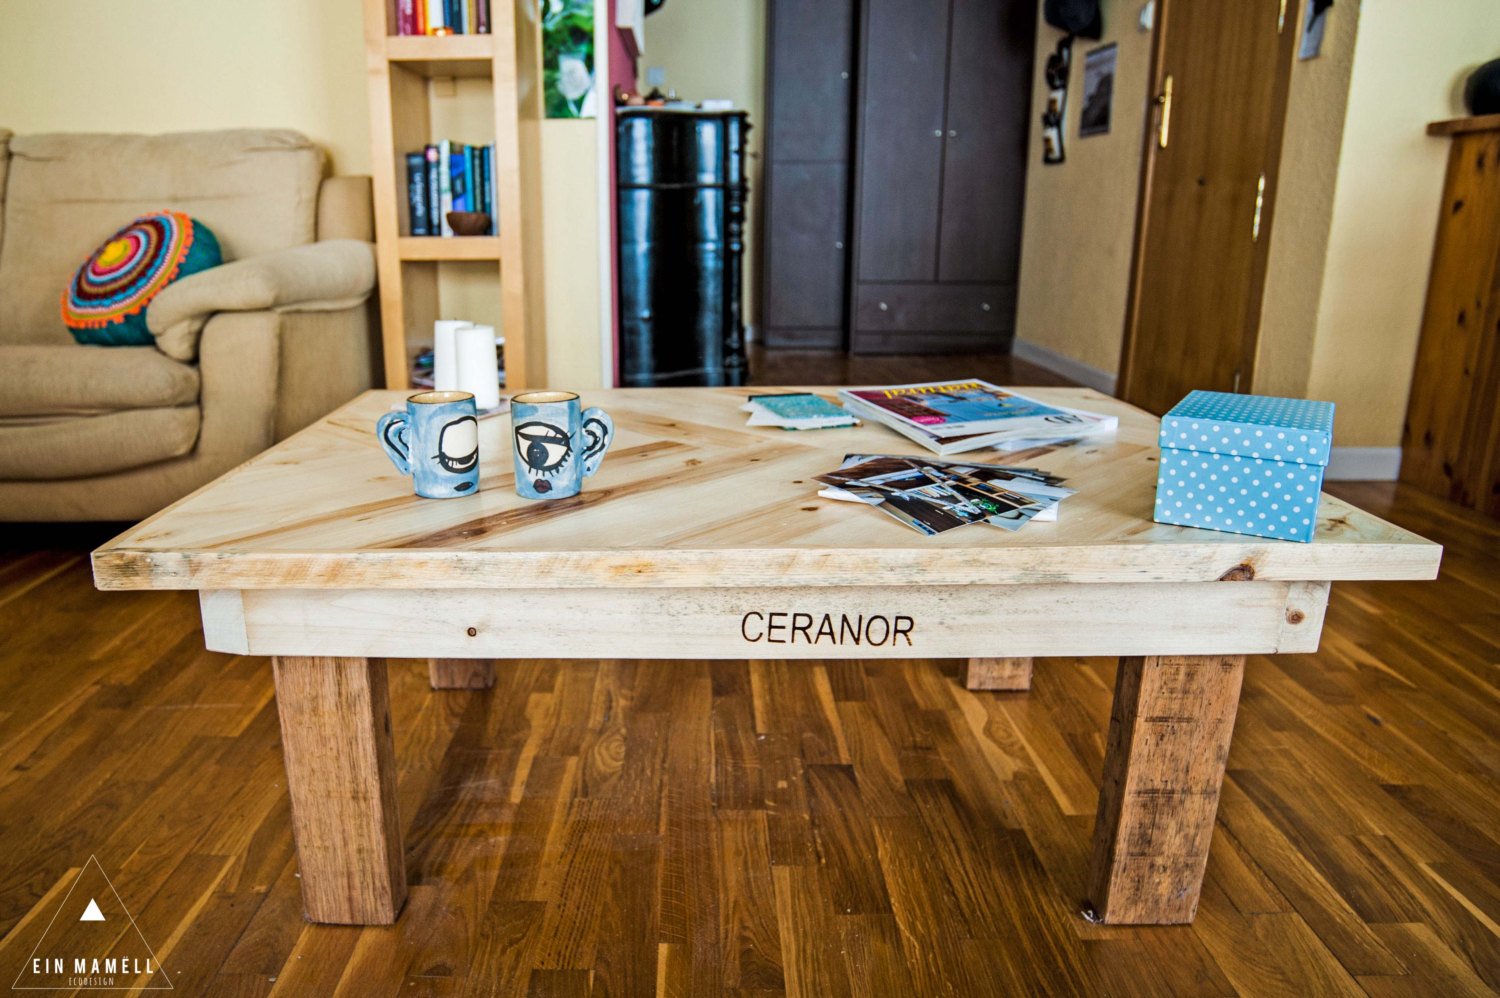 Wood pallet coffee table do you assume wood pallet coffee table - Recycled Pallet Wood Hall Table